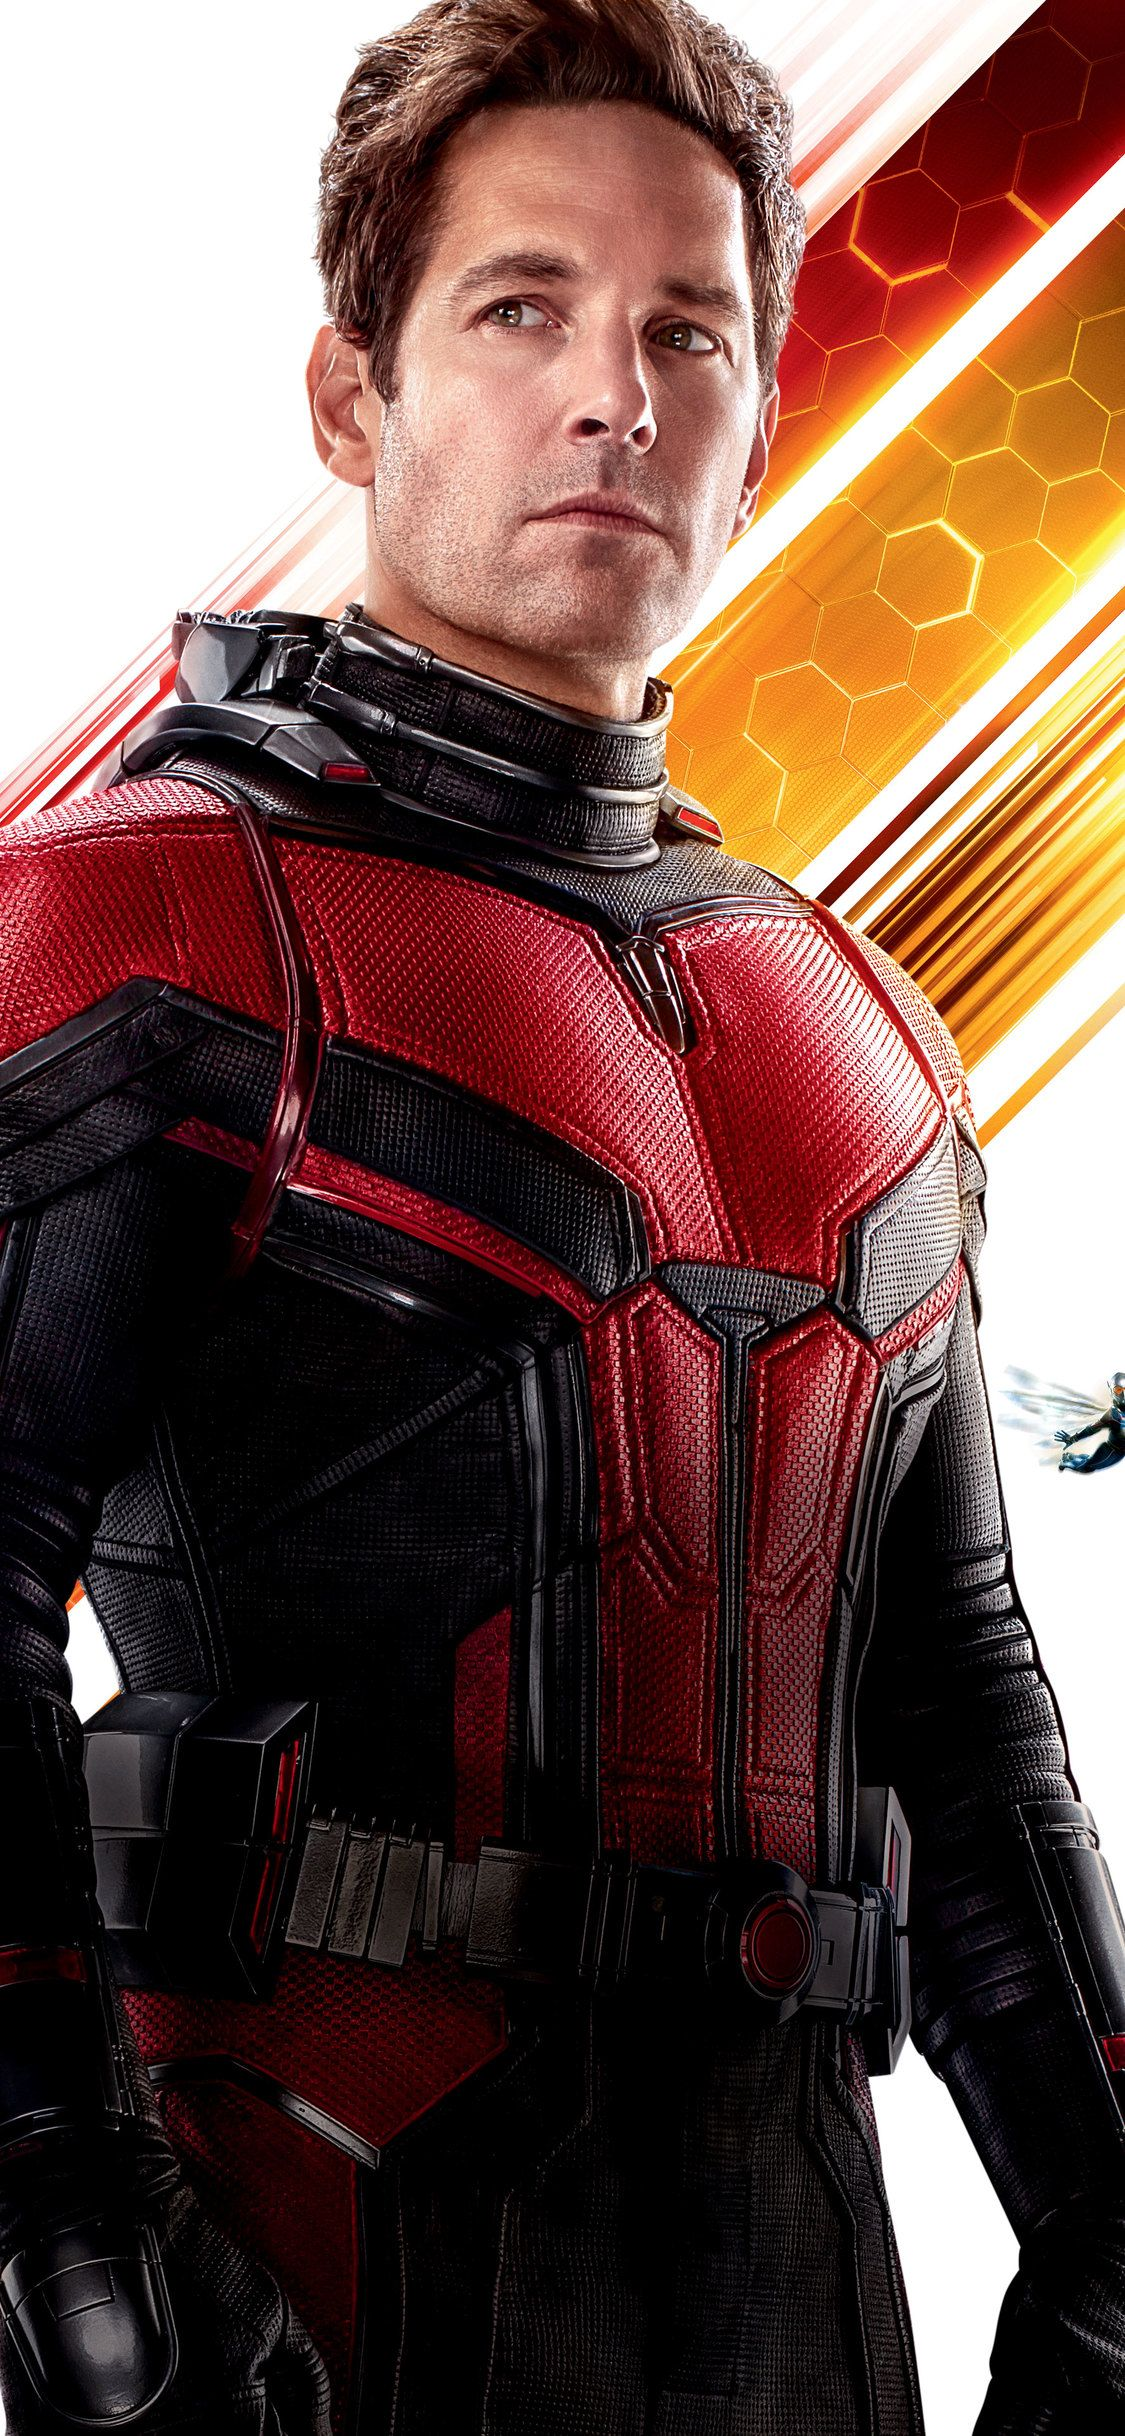 1125x2436 Paul Rudd As Antman In Ant Man And The Wasp 10k Iphone Xs Iphone 10 Iphone X Hd 4k Wallpapers Imag Ant Man Marvel Paul Rudd Ant Man Man Thing Marvel